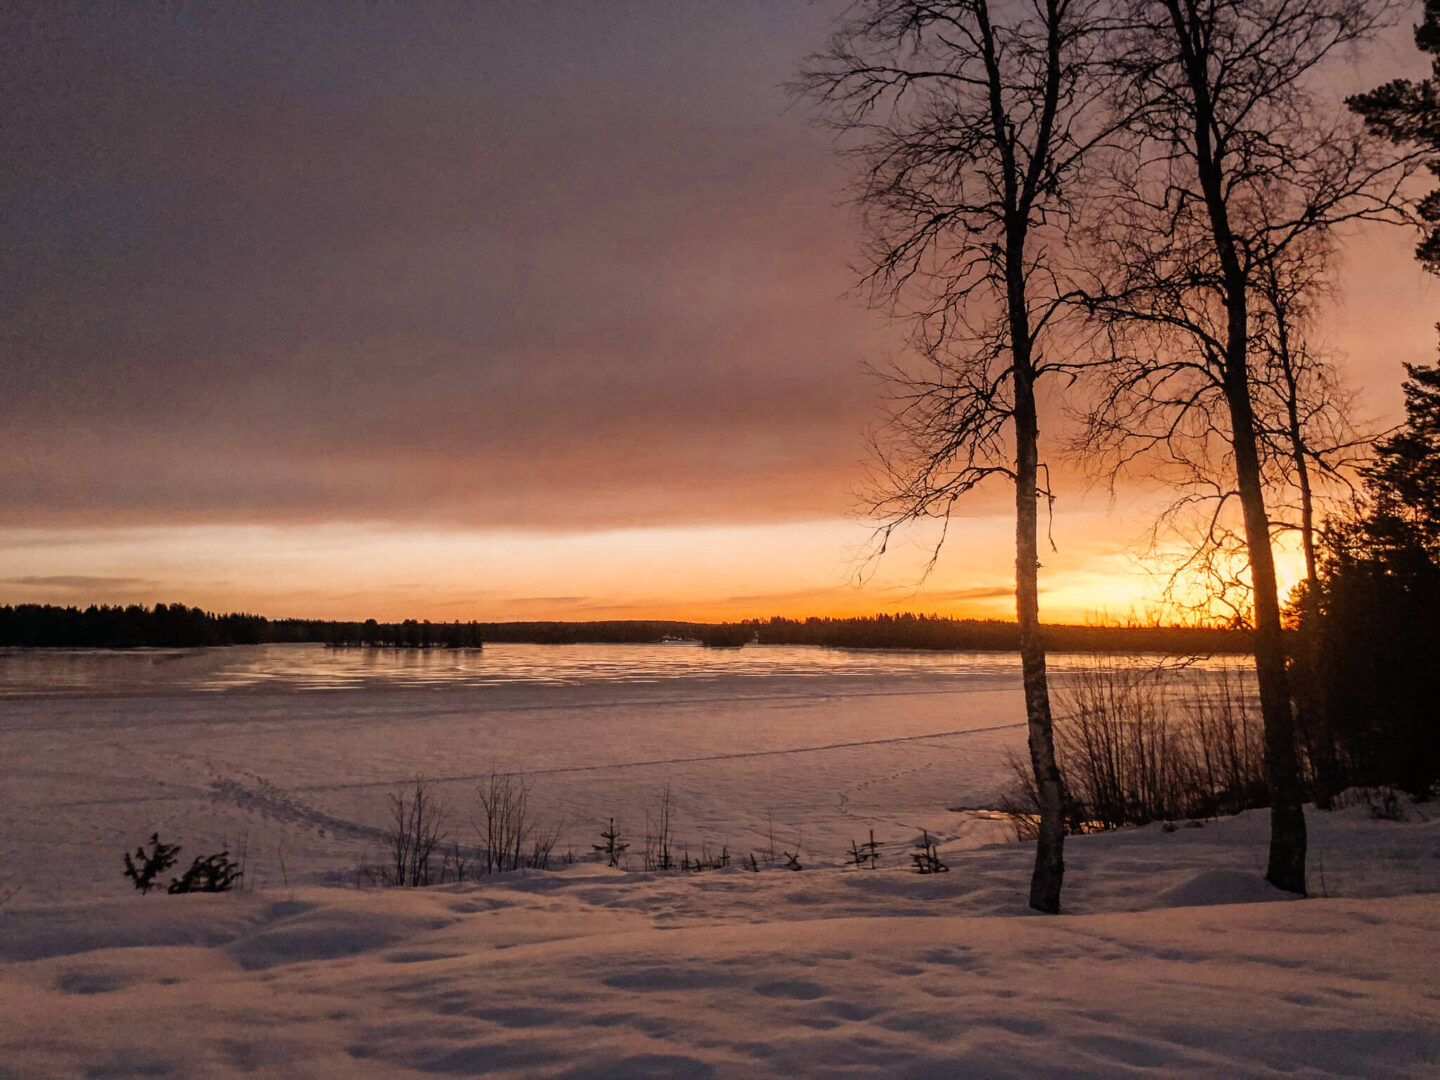 sunset over a frozen lake